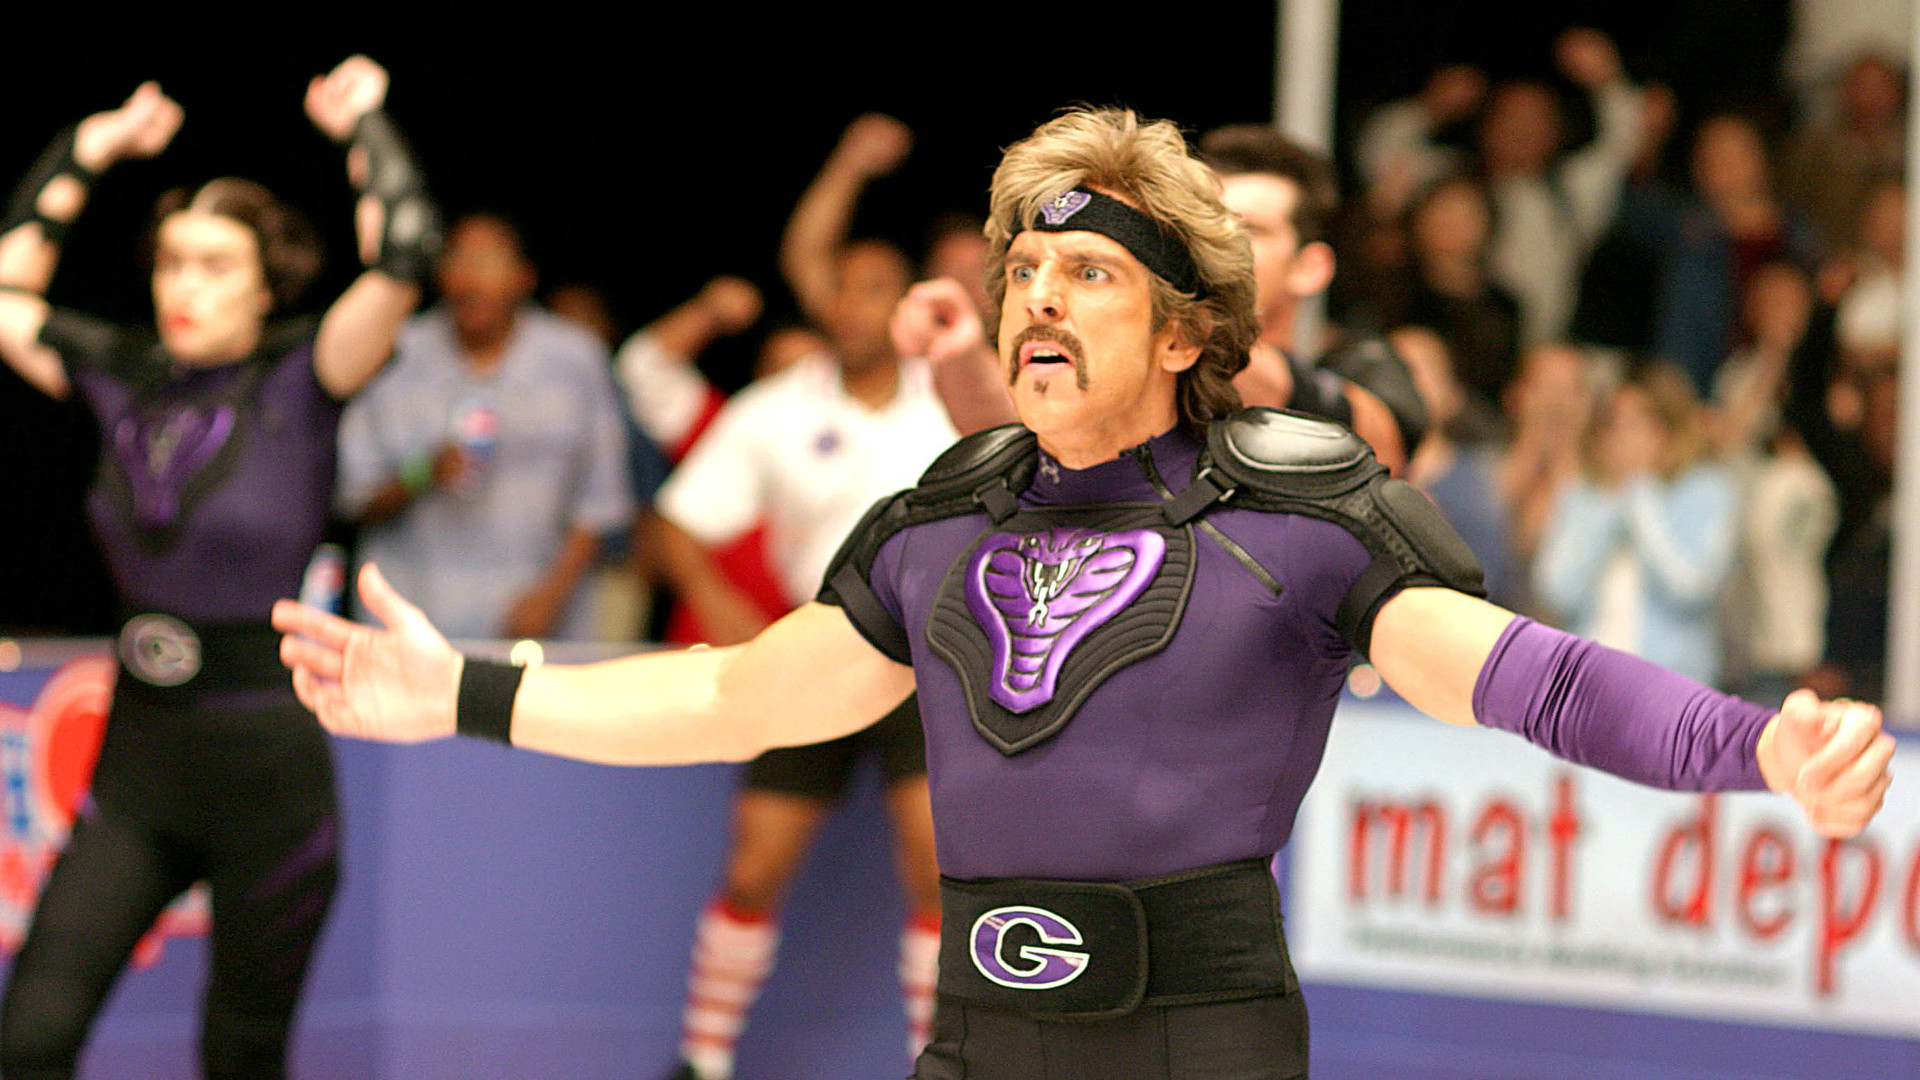 Ben Stiller in Dodgeball.